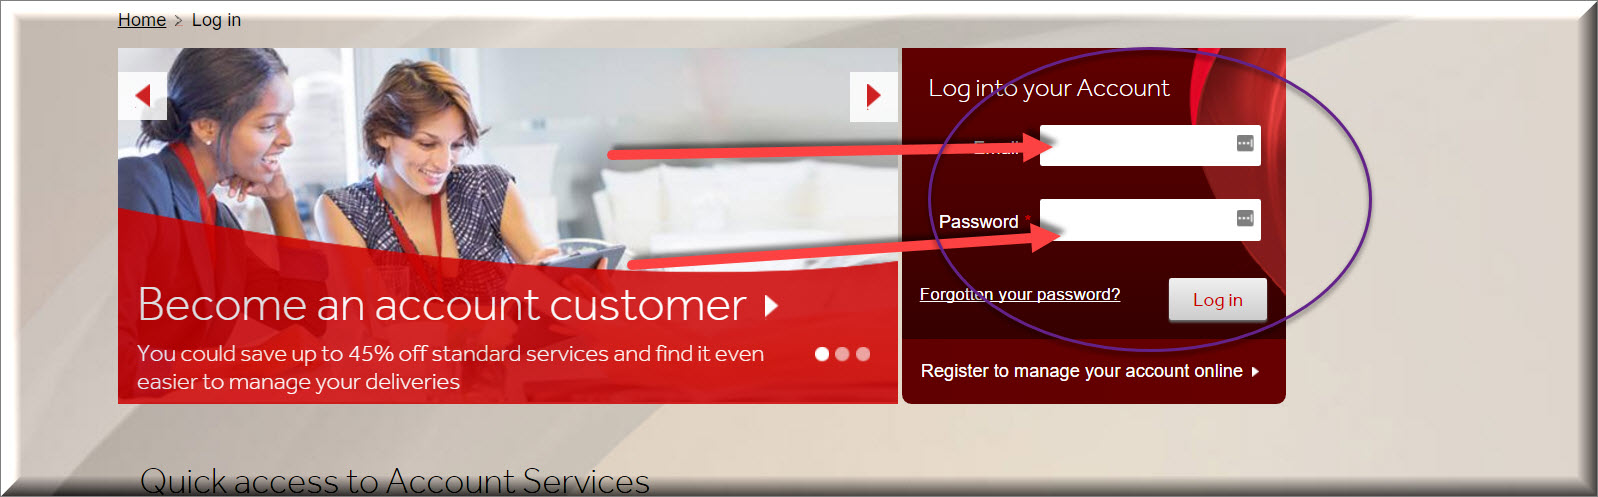 parcelforce login page